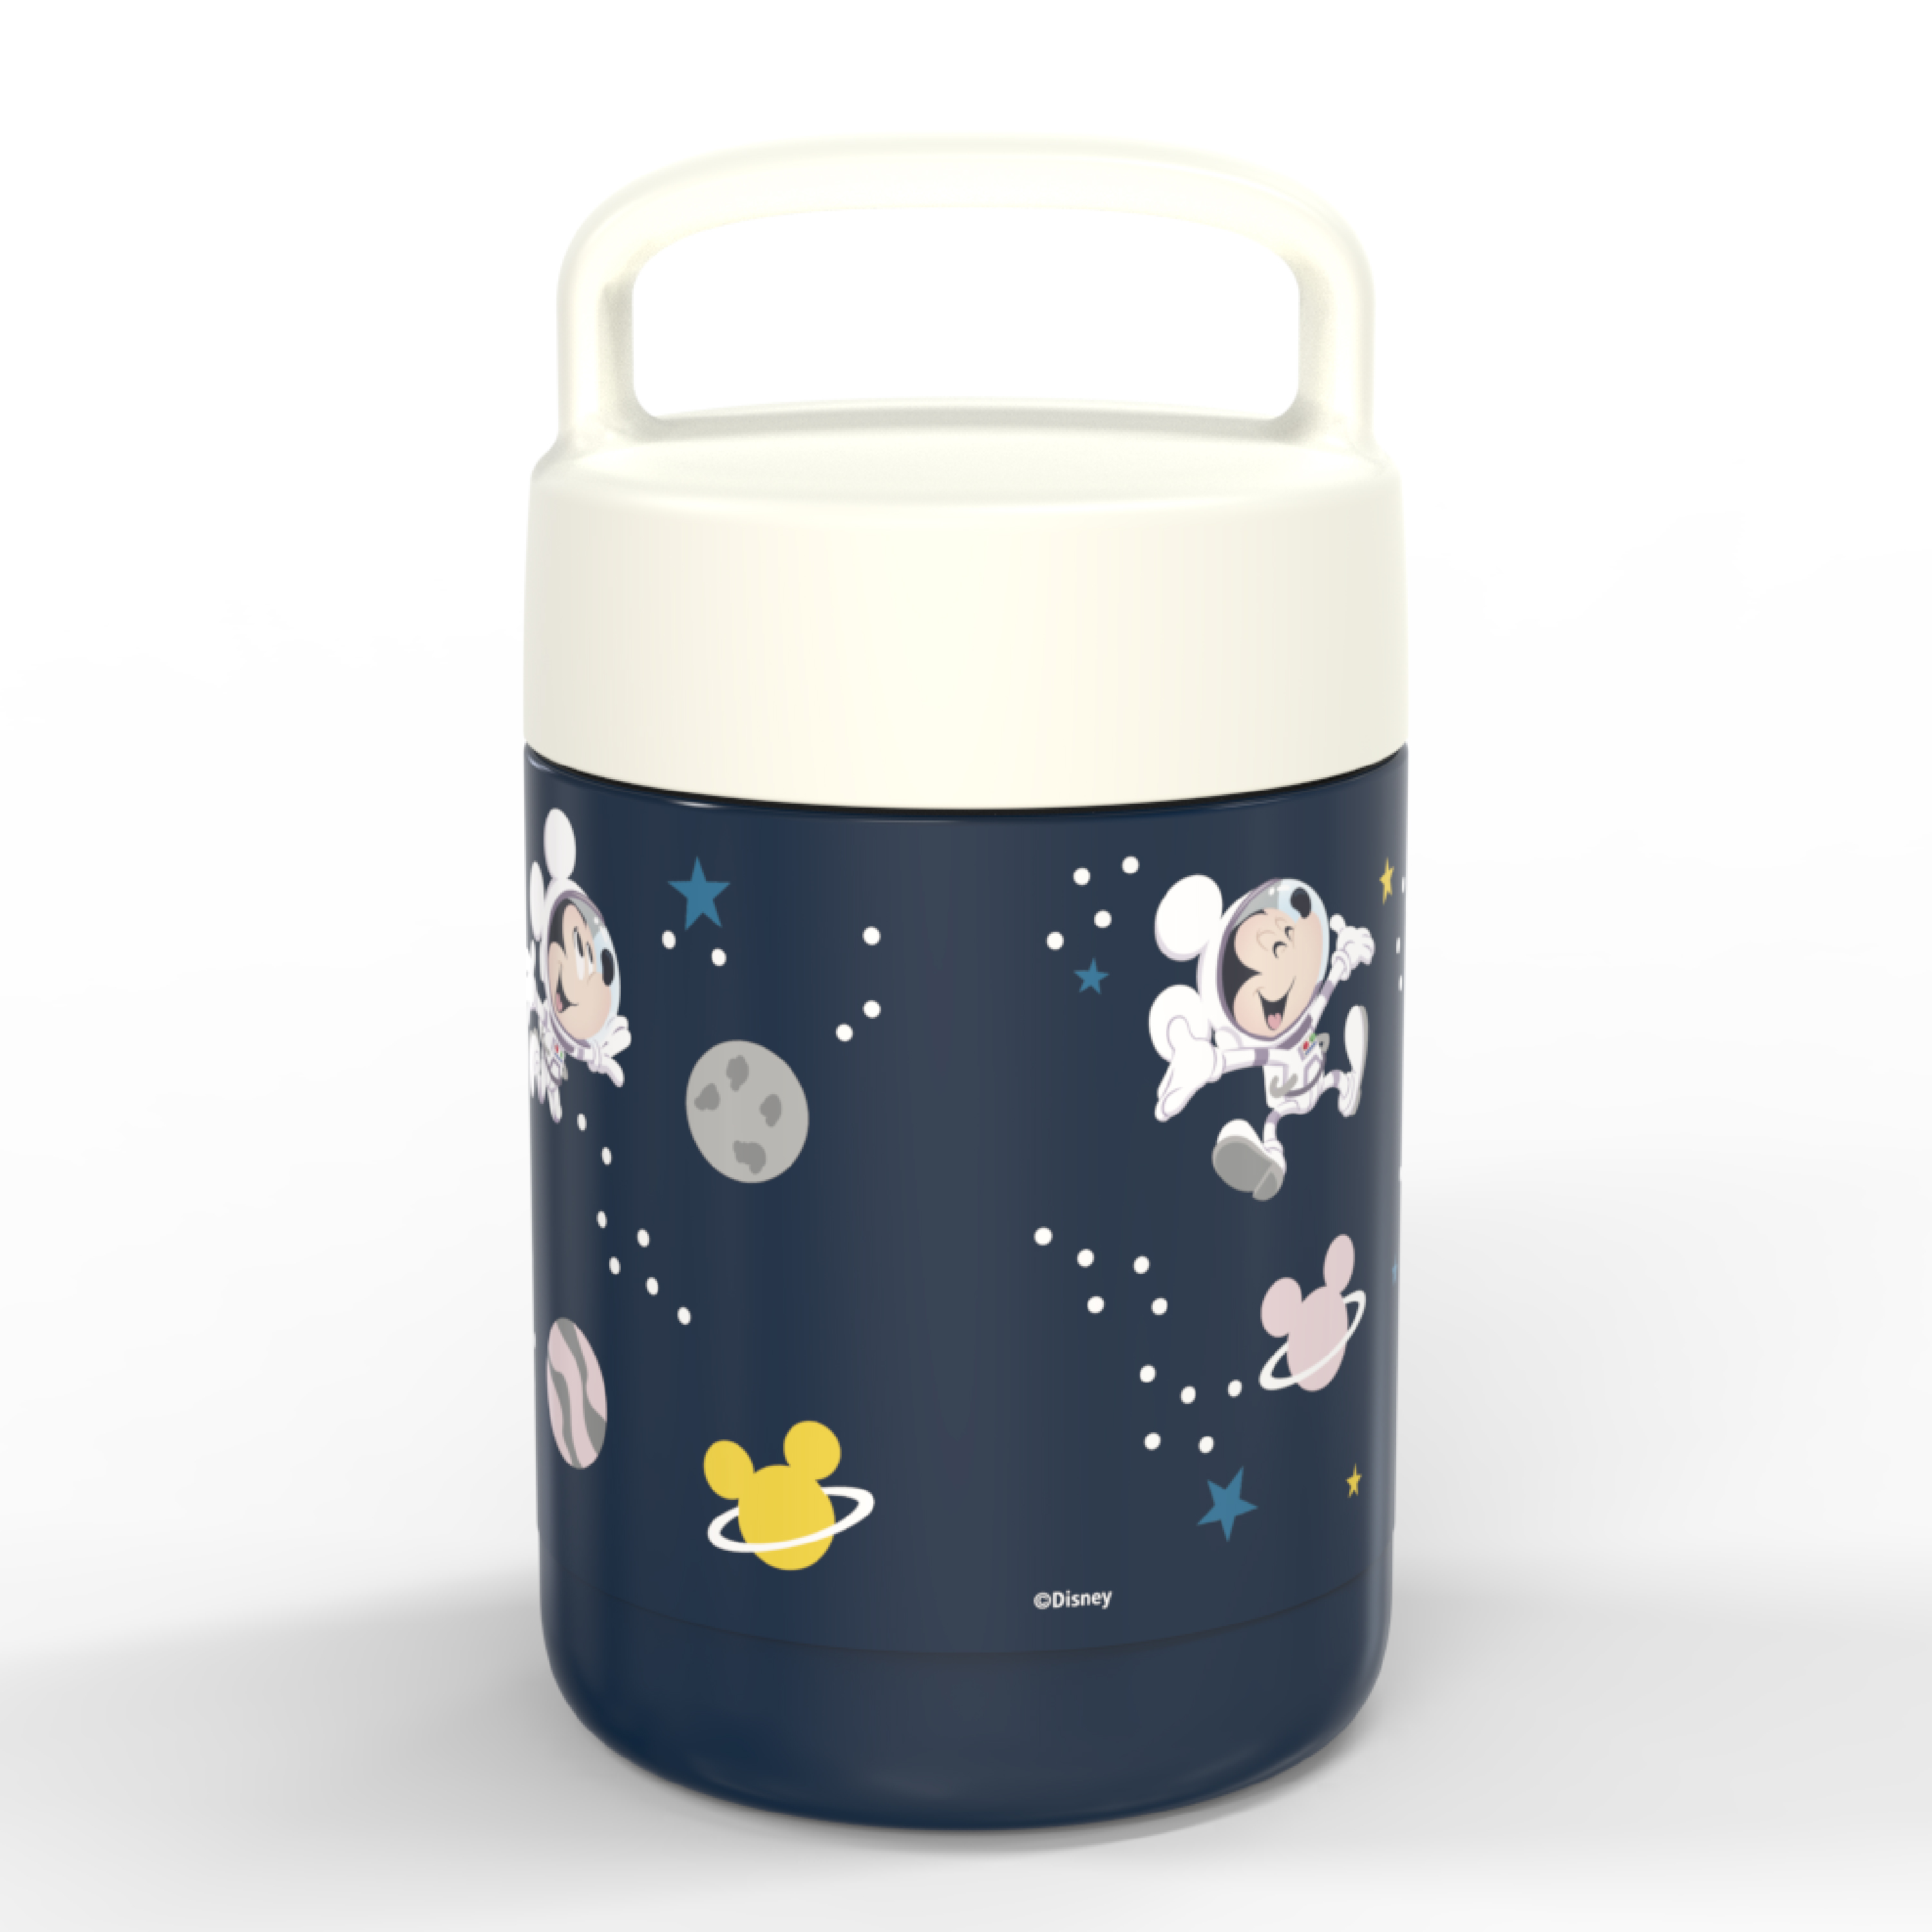 Disney Reusable Vacuum Insulated Stainless Steel Food Container, Mickey Mouse slideshow image 4